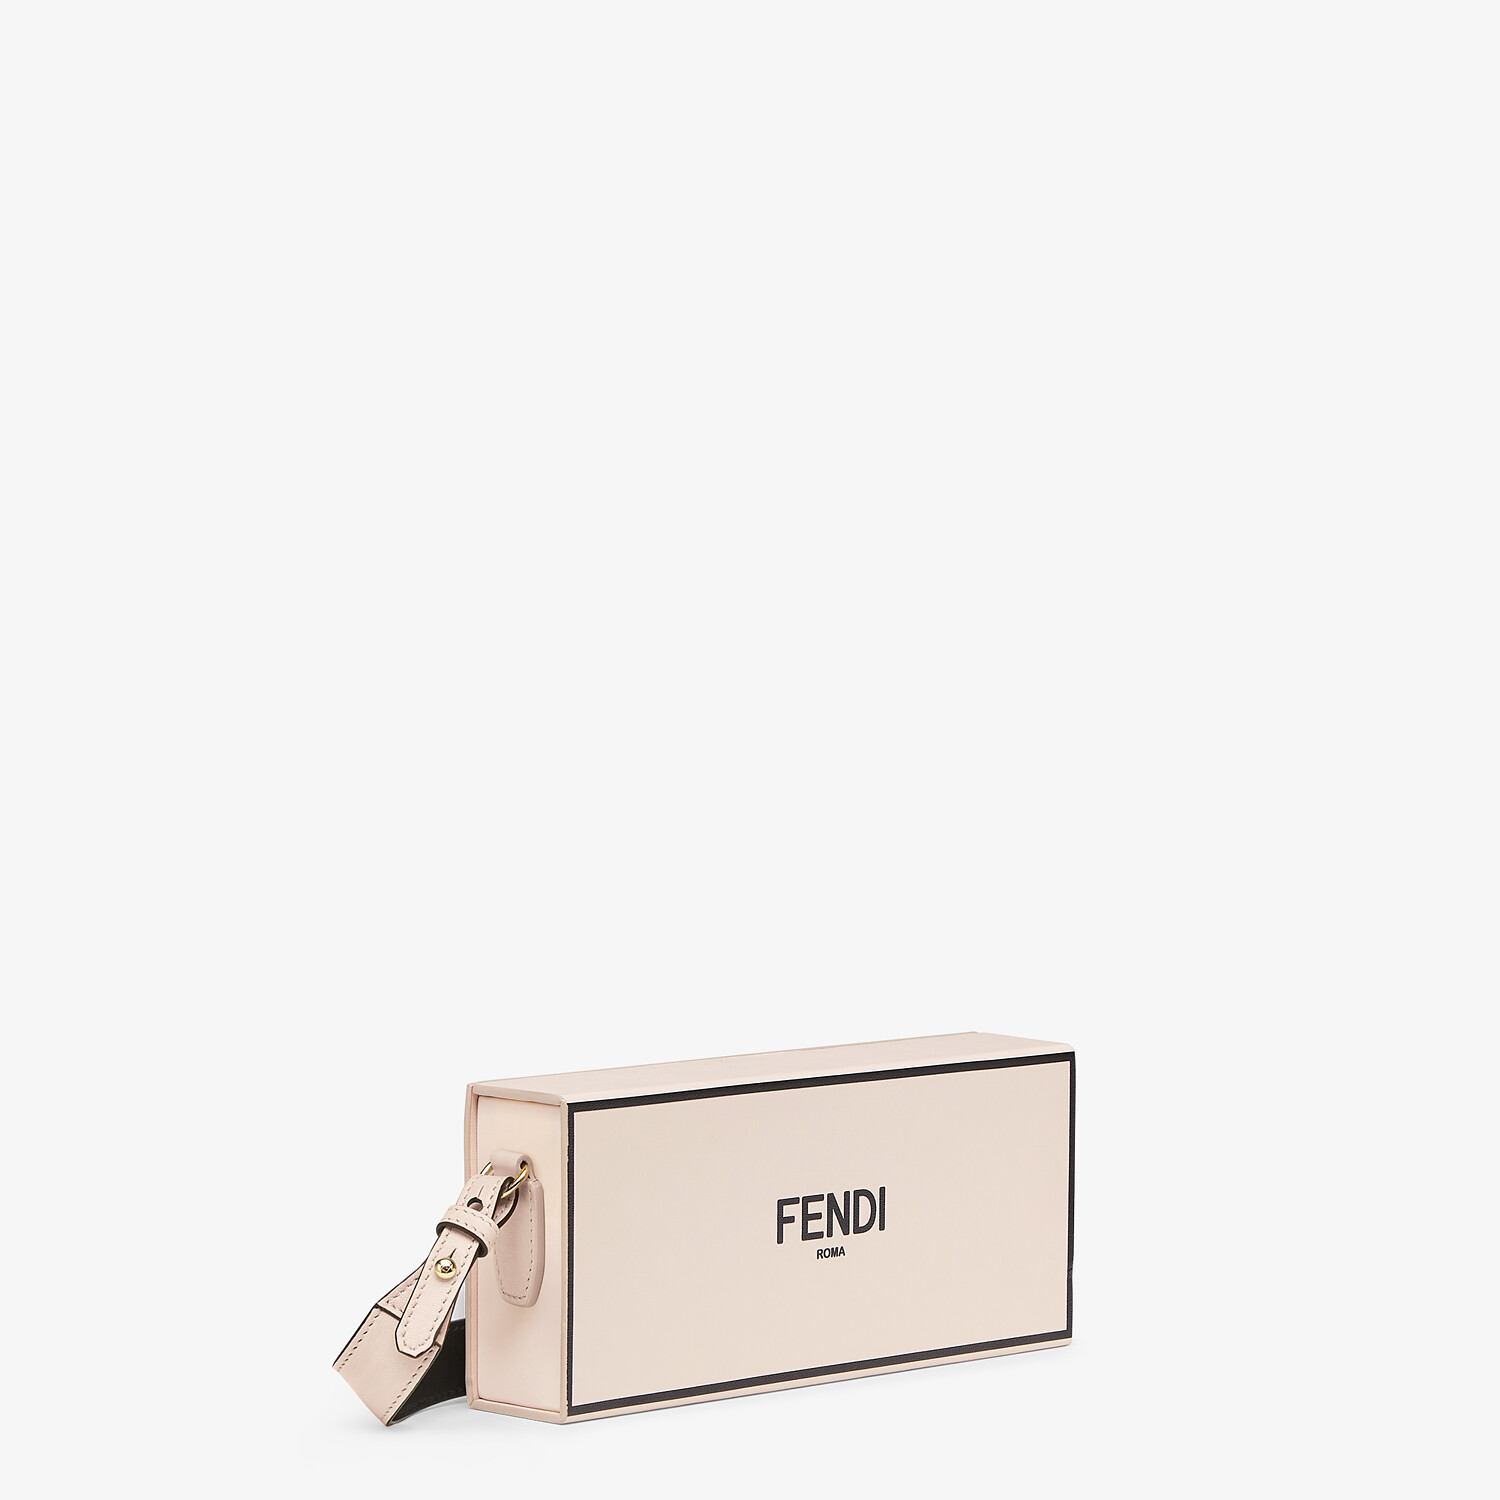 FENDI HORIZONTAL BOX - Pink leather bag - view 2 detail